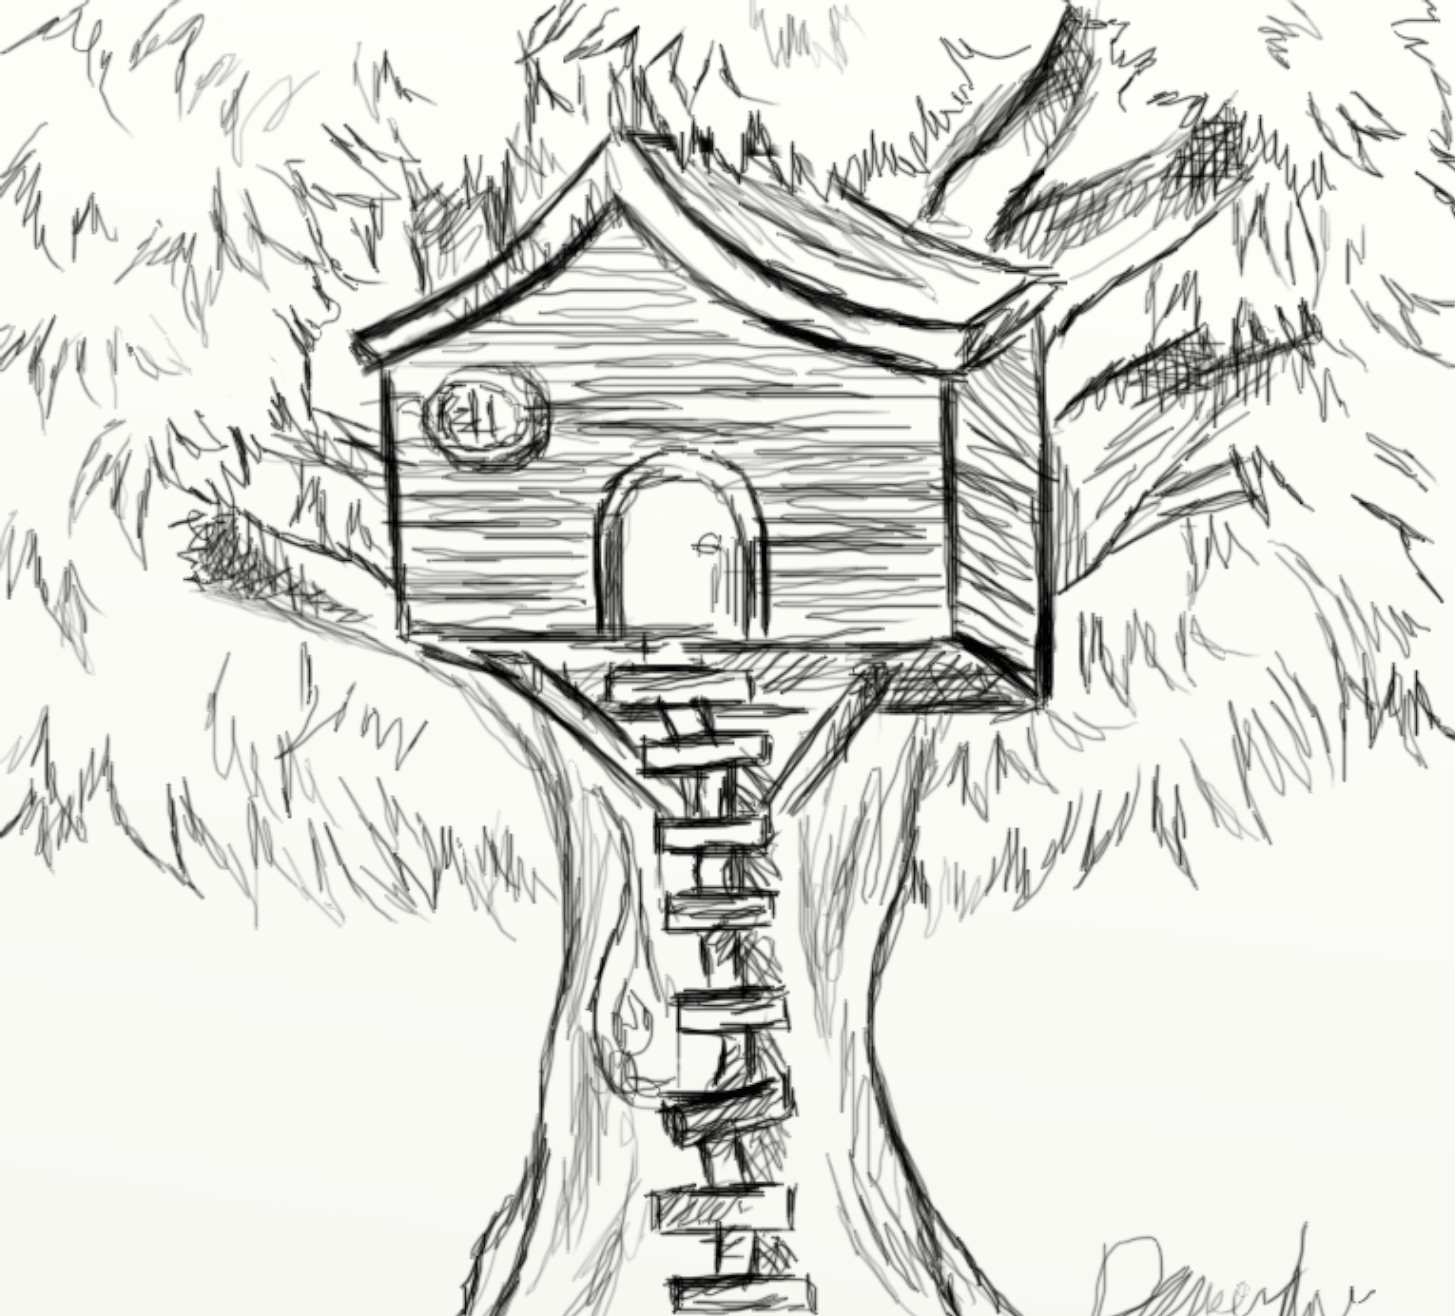 Sep 25 1024x926 Day  196 Tree House Sketch